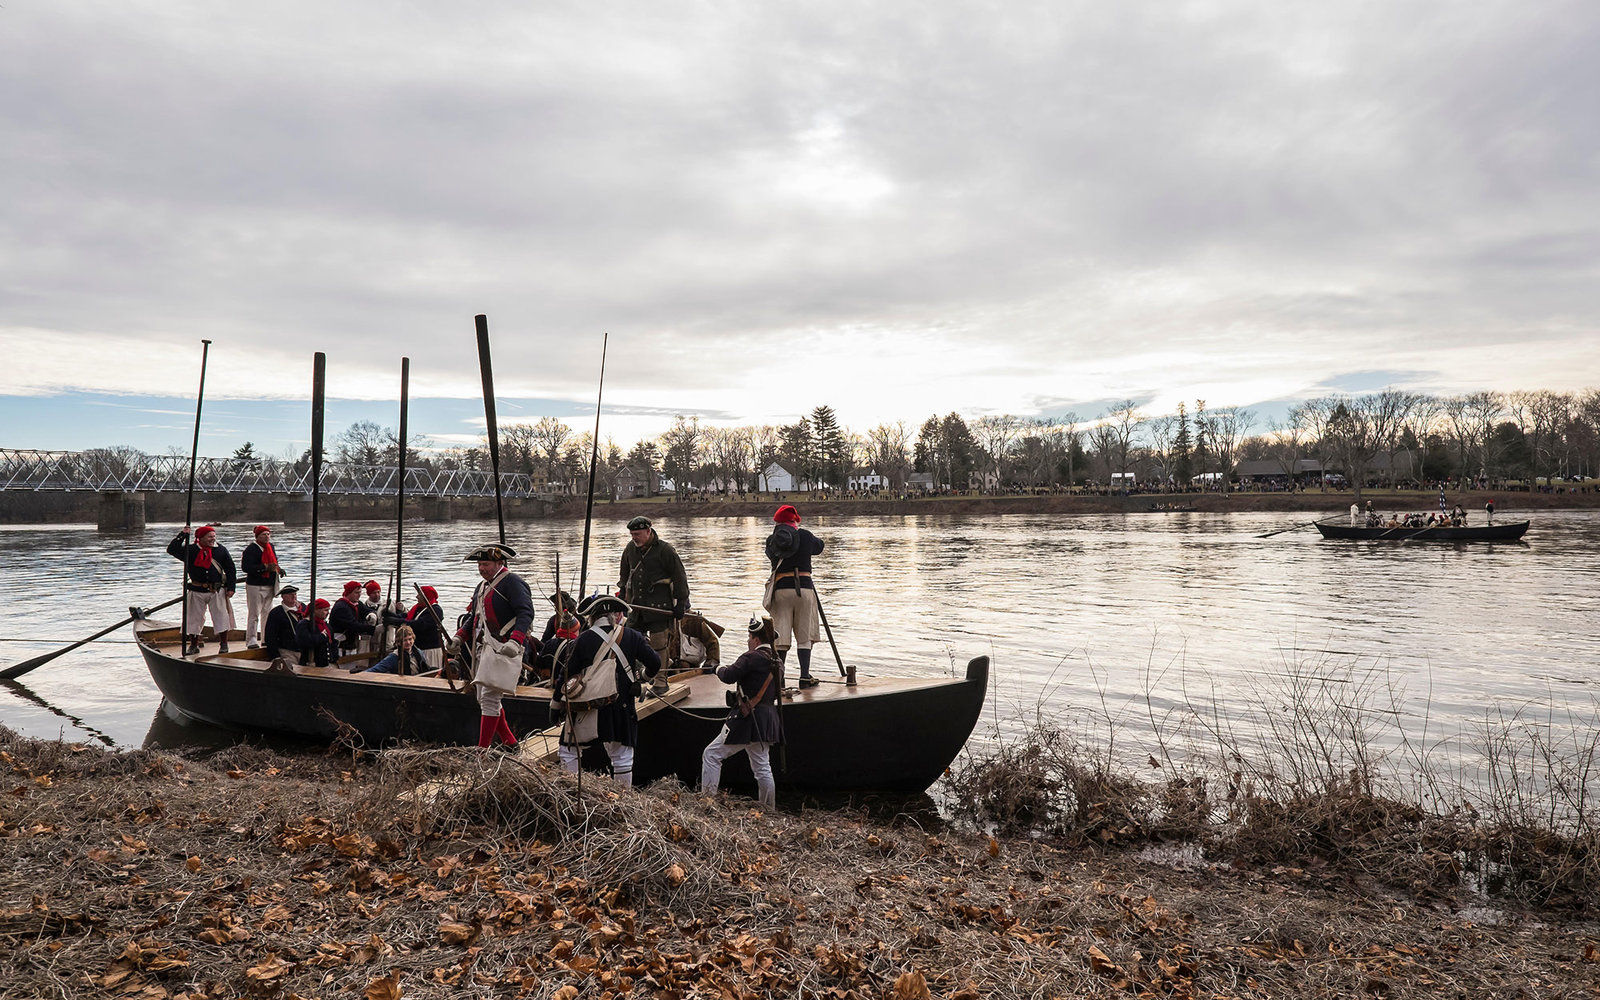 DNFY38 WASHINGTON CROSSING, NEW JERSEY - December 25, 2013: Soldiers land in New Jersey as part of a reenactment of Washington's crossing of the Delaware River.  Over 100 reenactors celebrated the 237th anniversary of the event. © Jeffrey Willey/Alamy Li